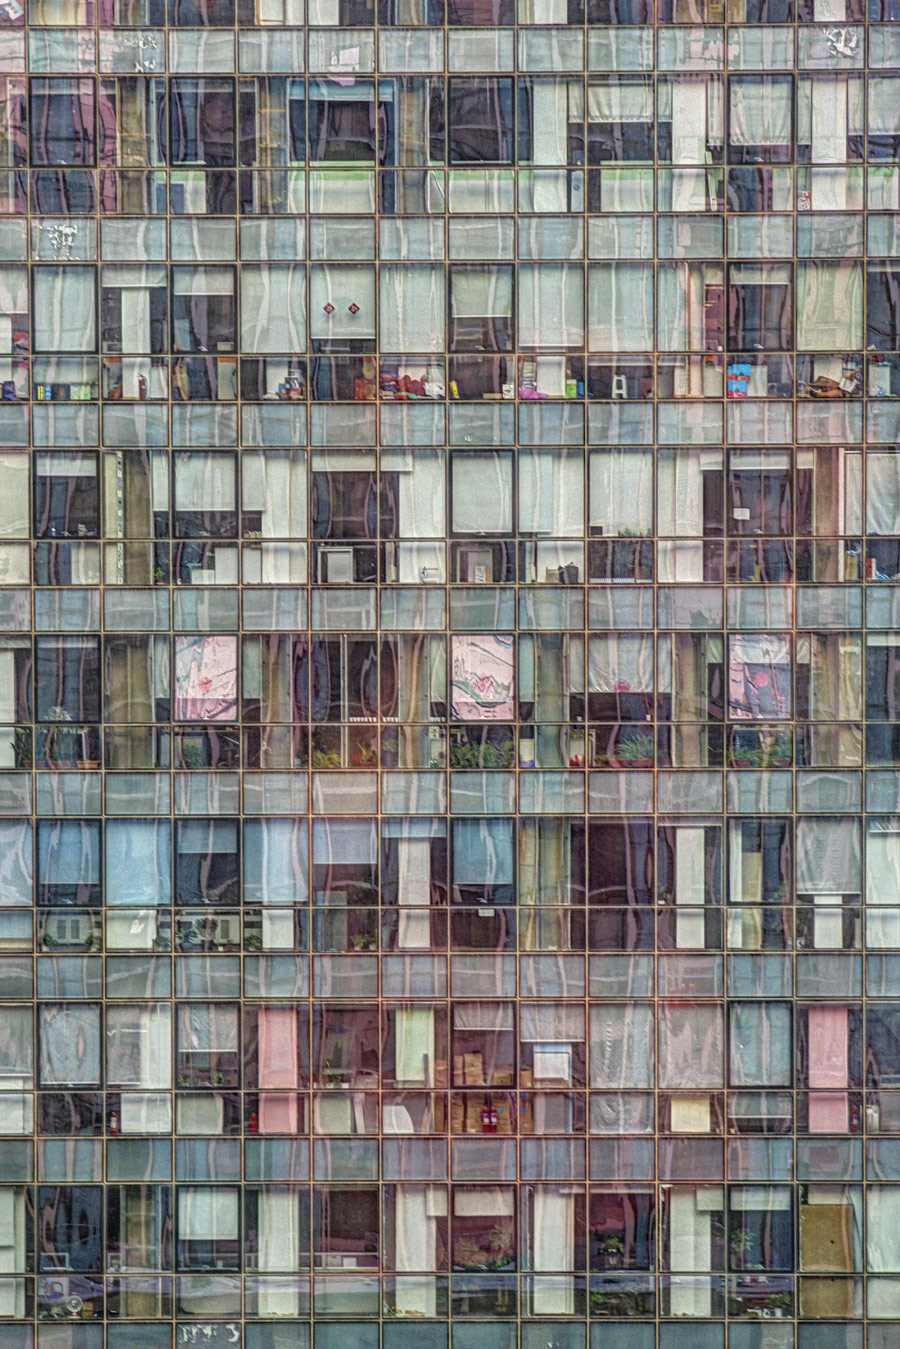 Photographer: Tom Stahl, Project: An office building in Beijing, China, Architectural Photography Awards